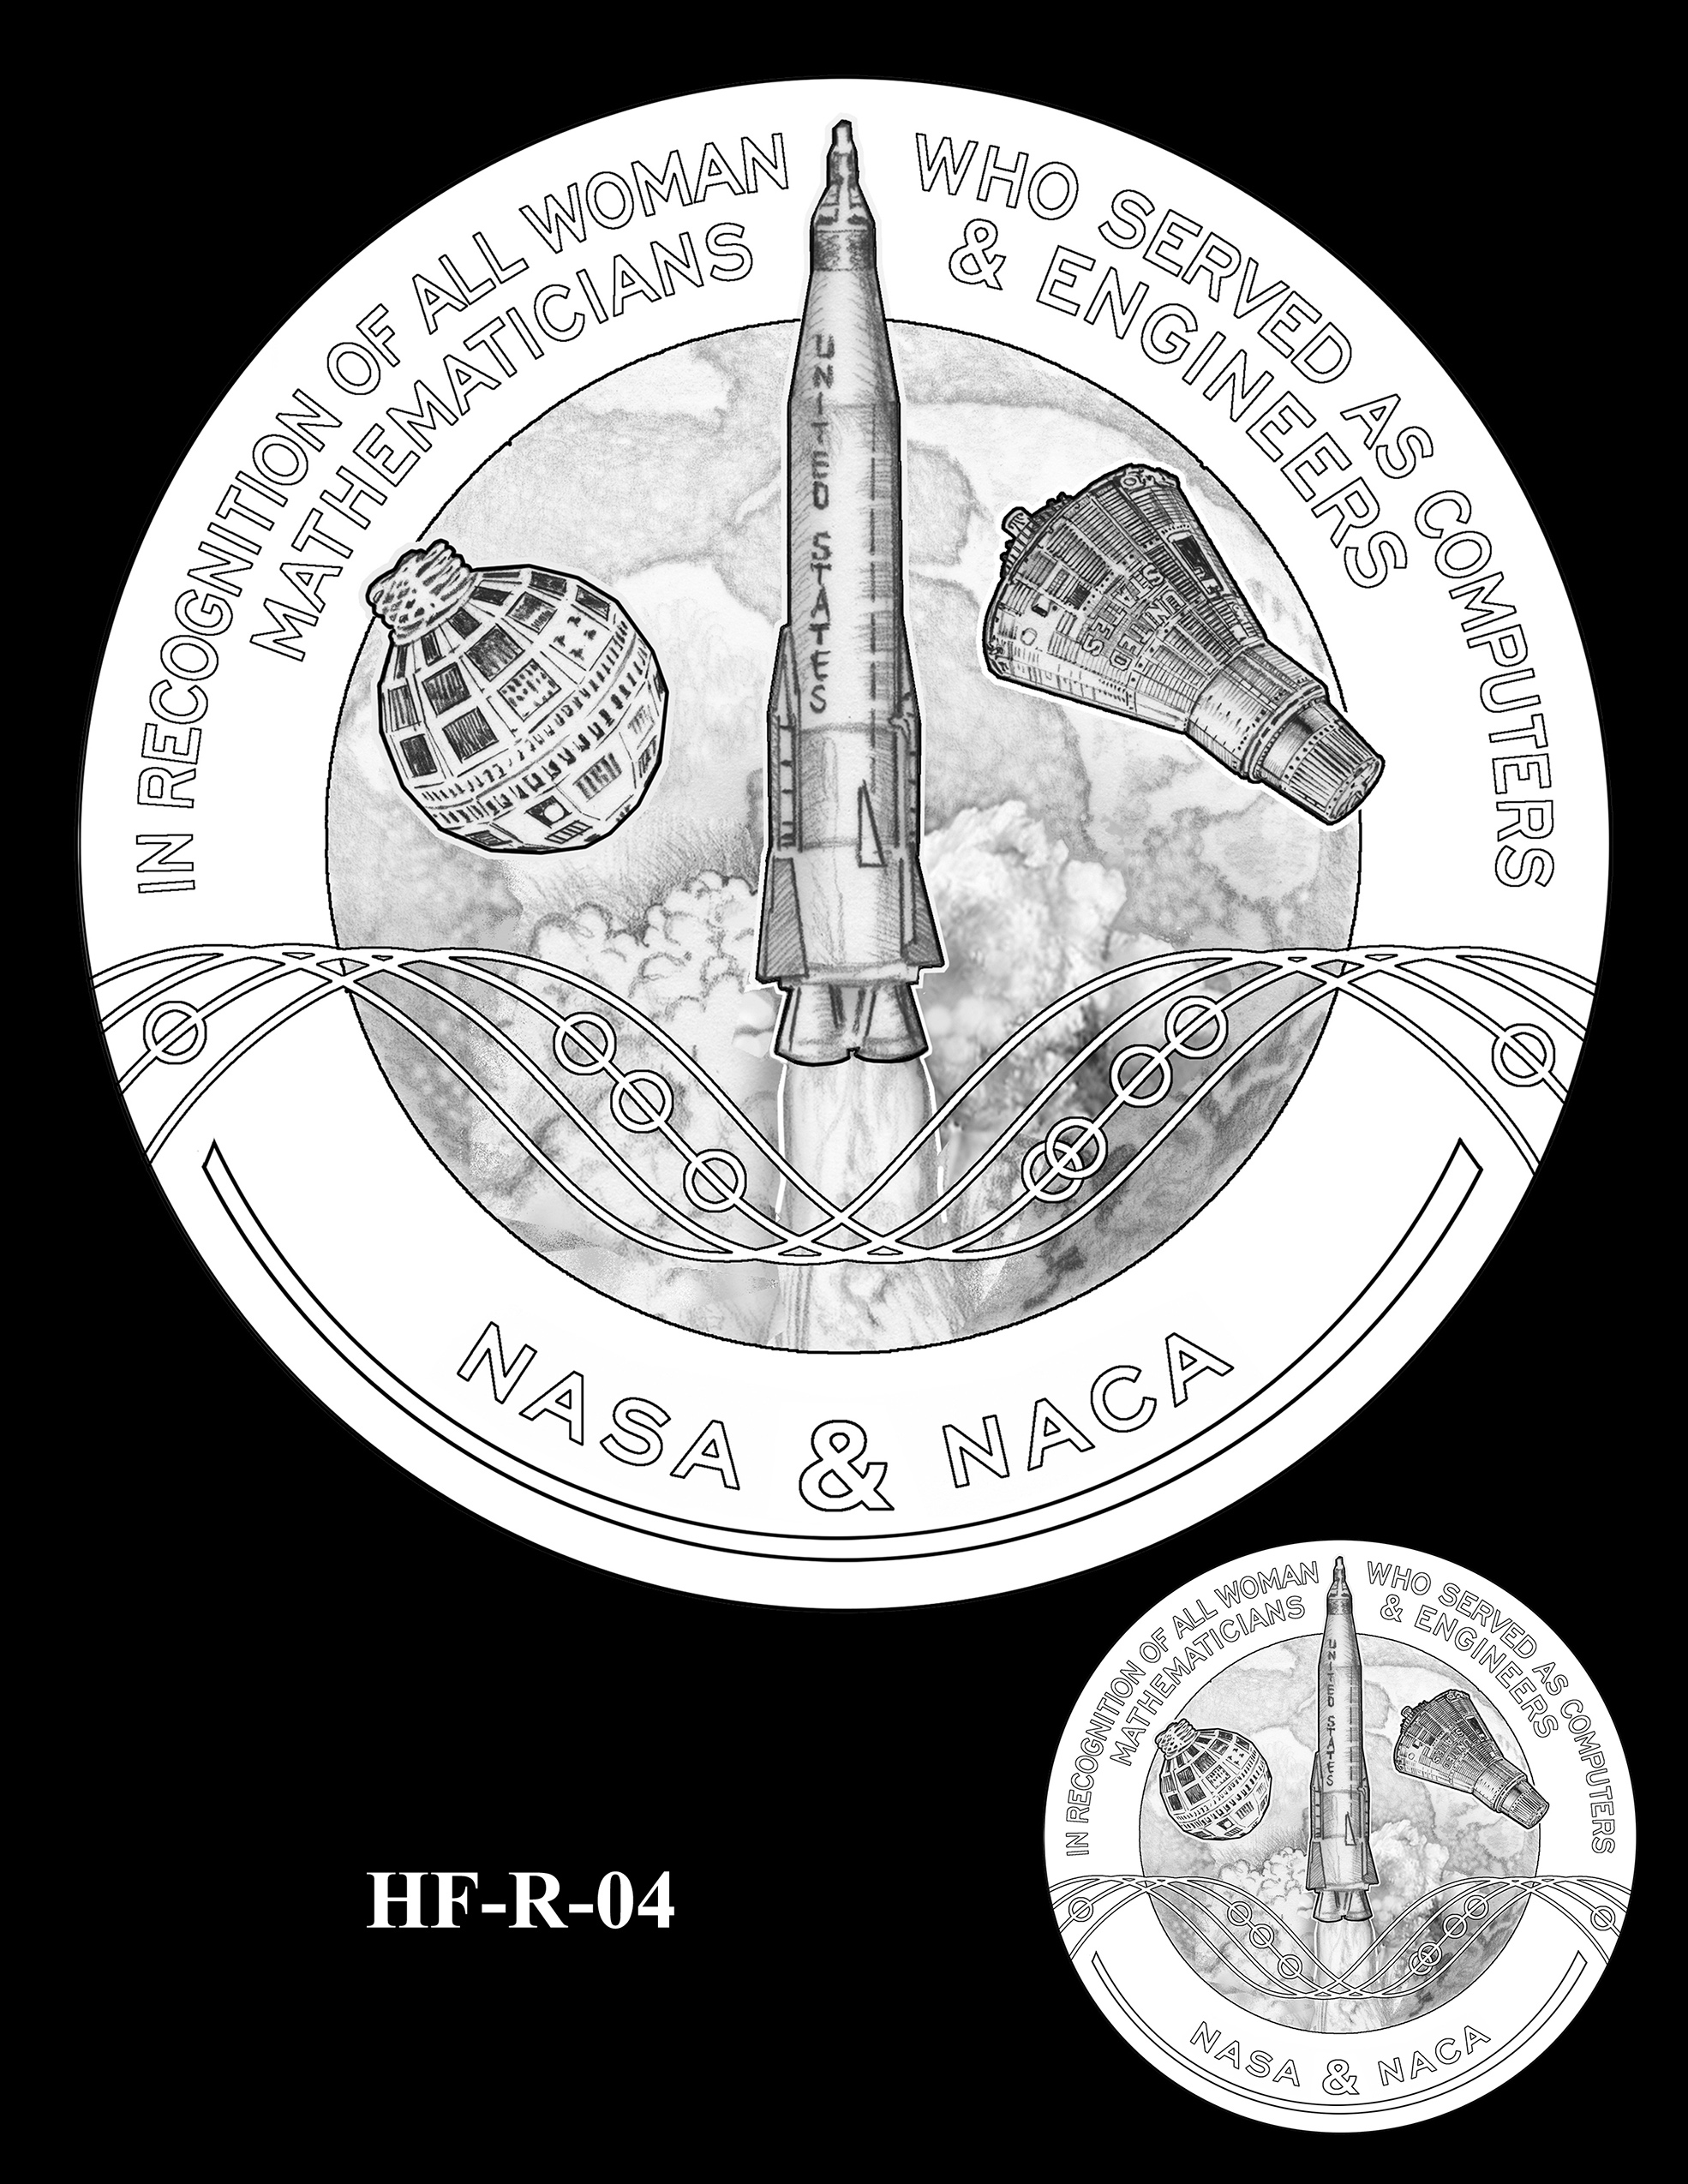 HF-R-04 -- Hidden Figures Group Congressional Gold Medal